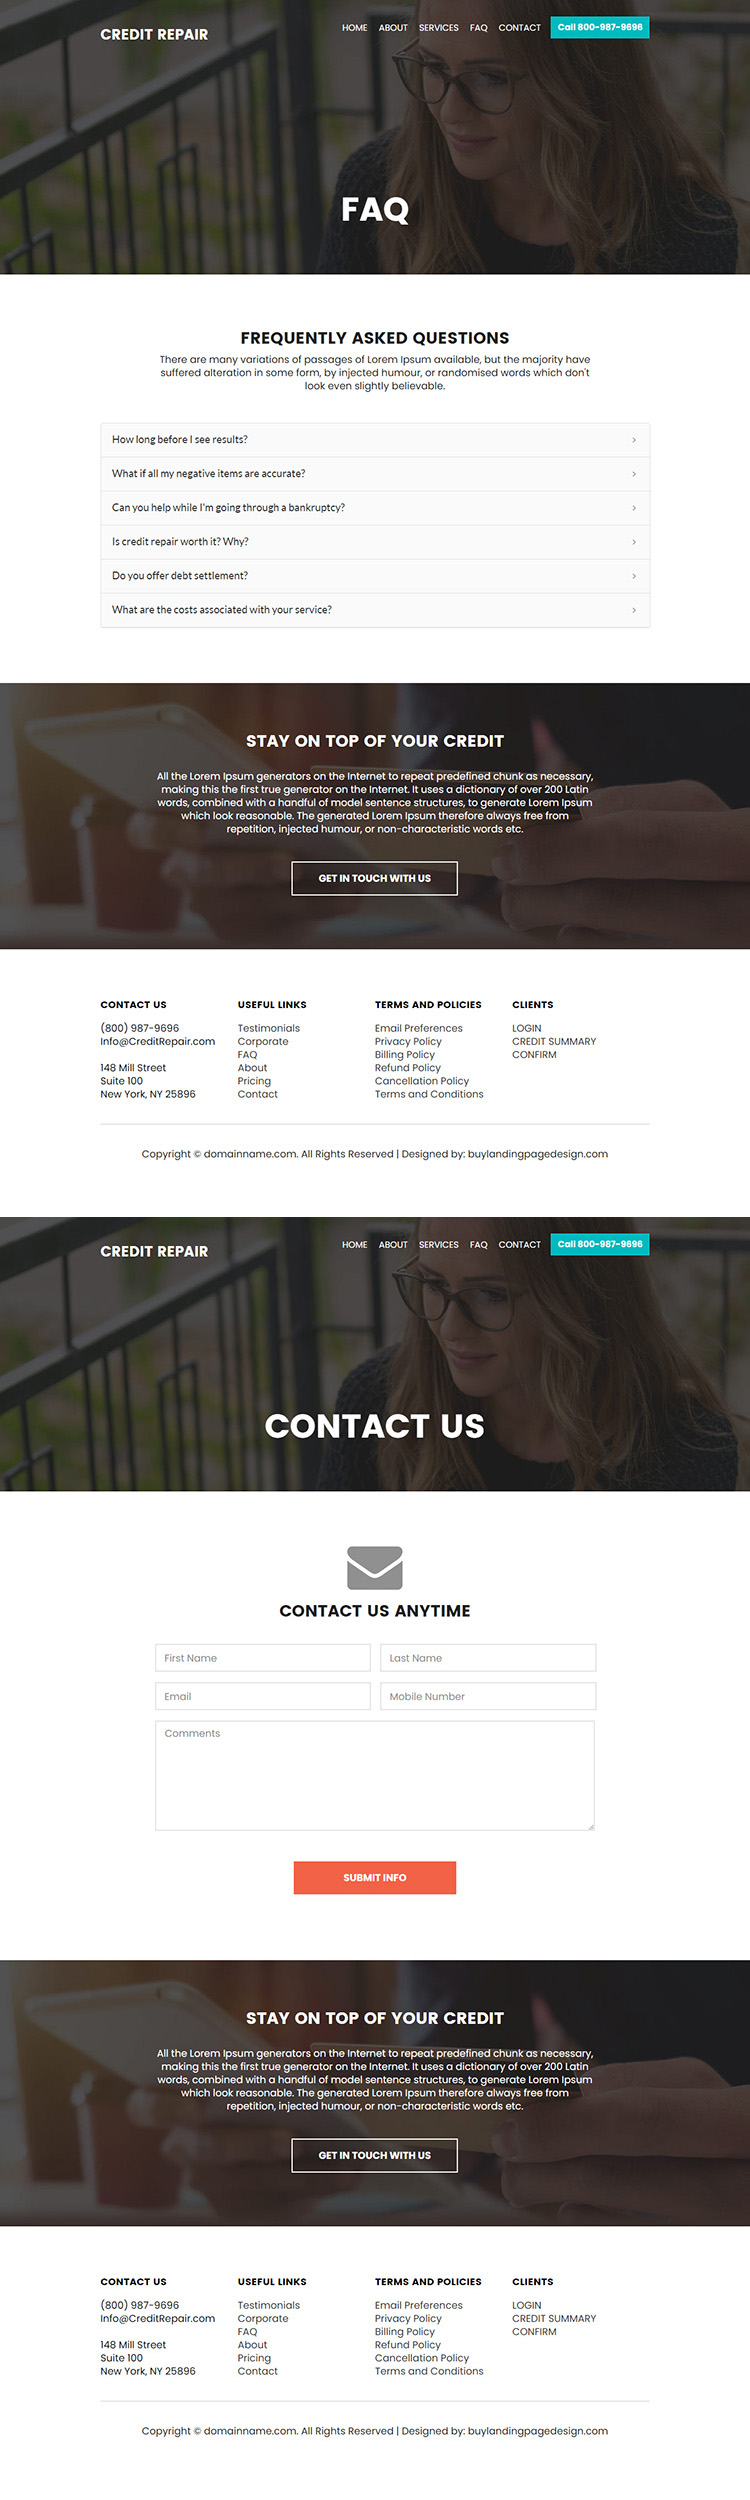 credit repair company free consultation lead capturing landing page